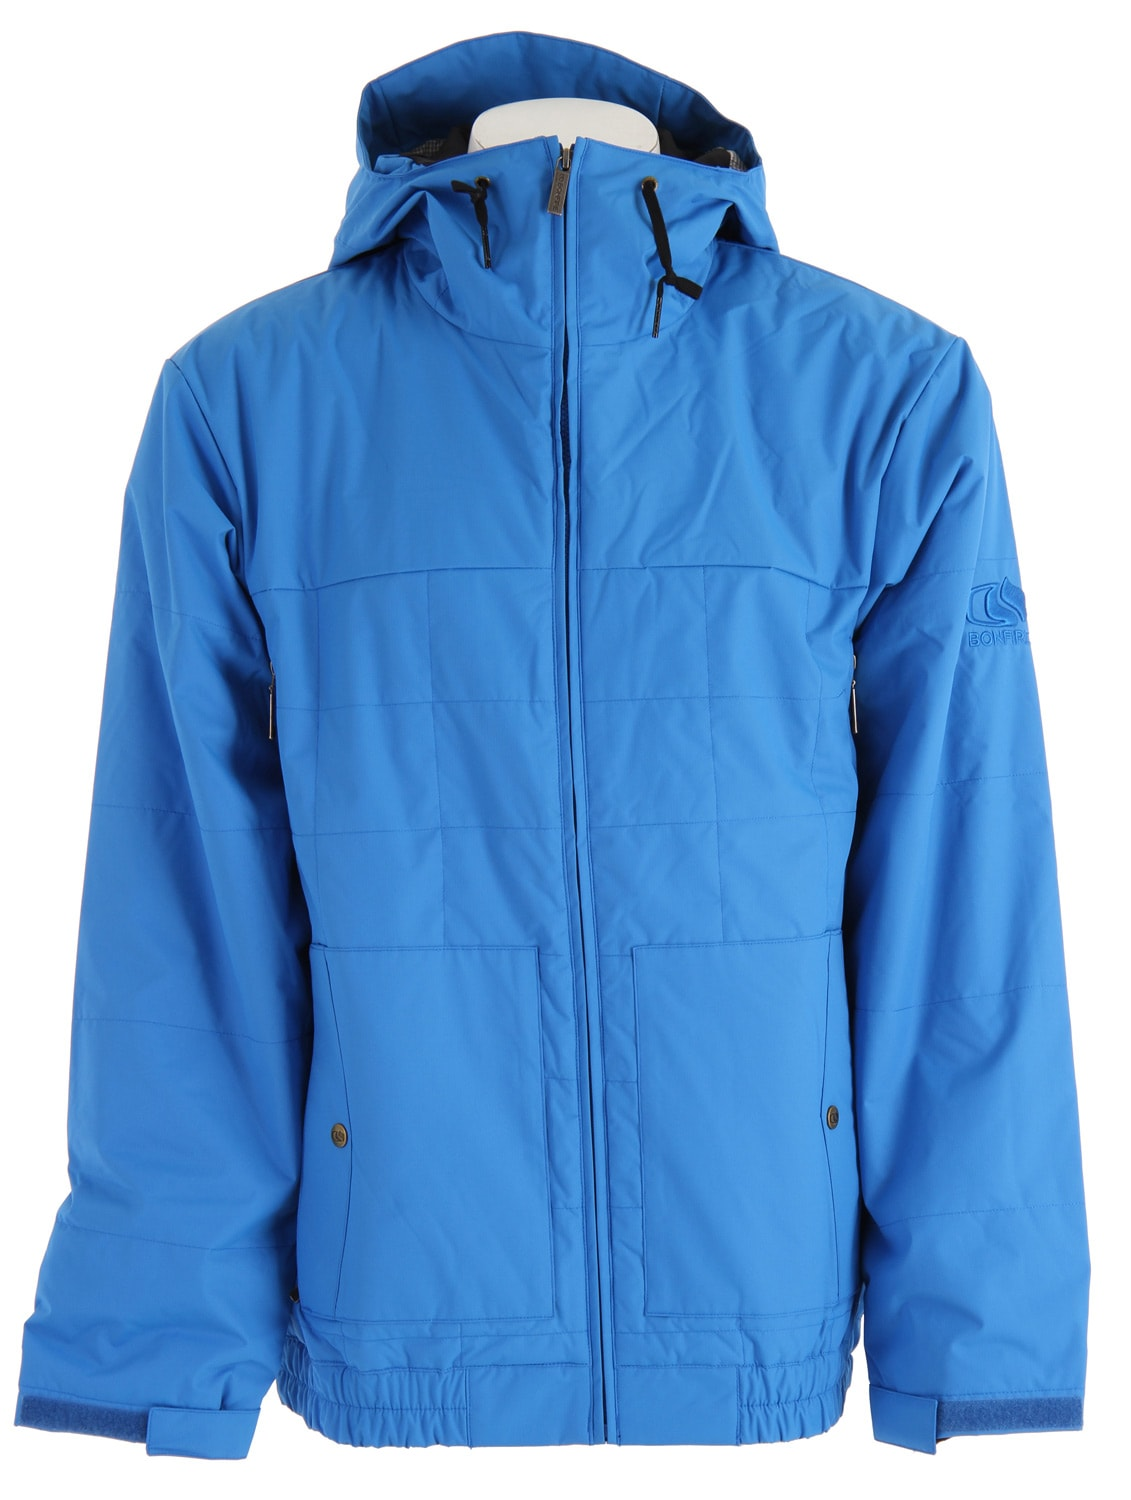 Bonfire Essential Awesome Jacket Bluebird - Men's